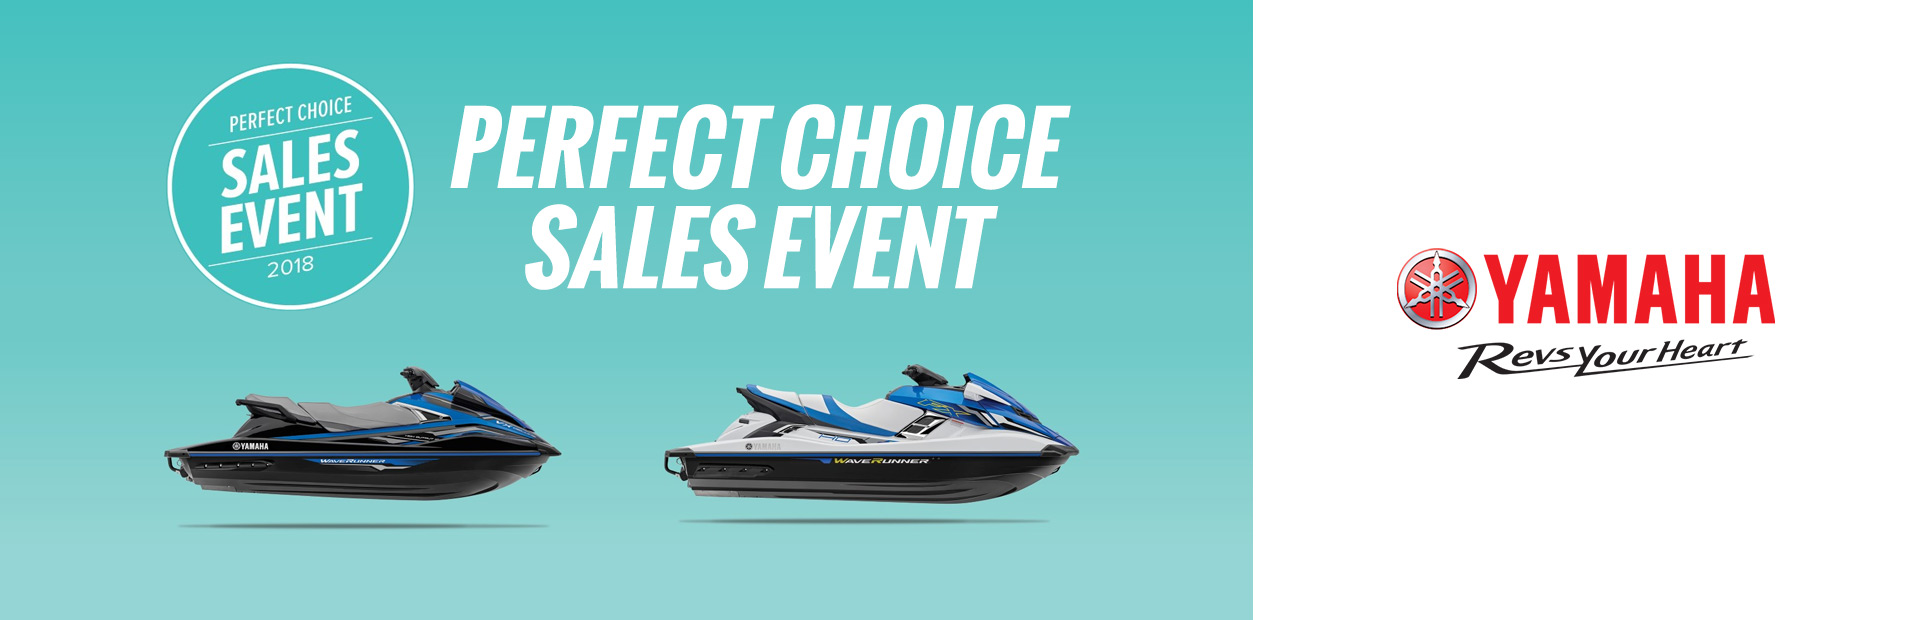 Yamaha: Perfect Choice Sales Event